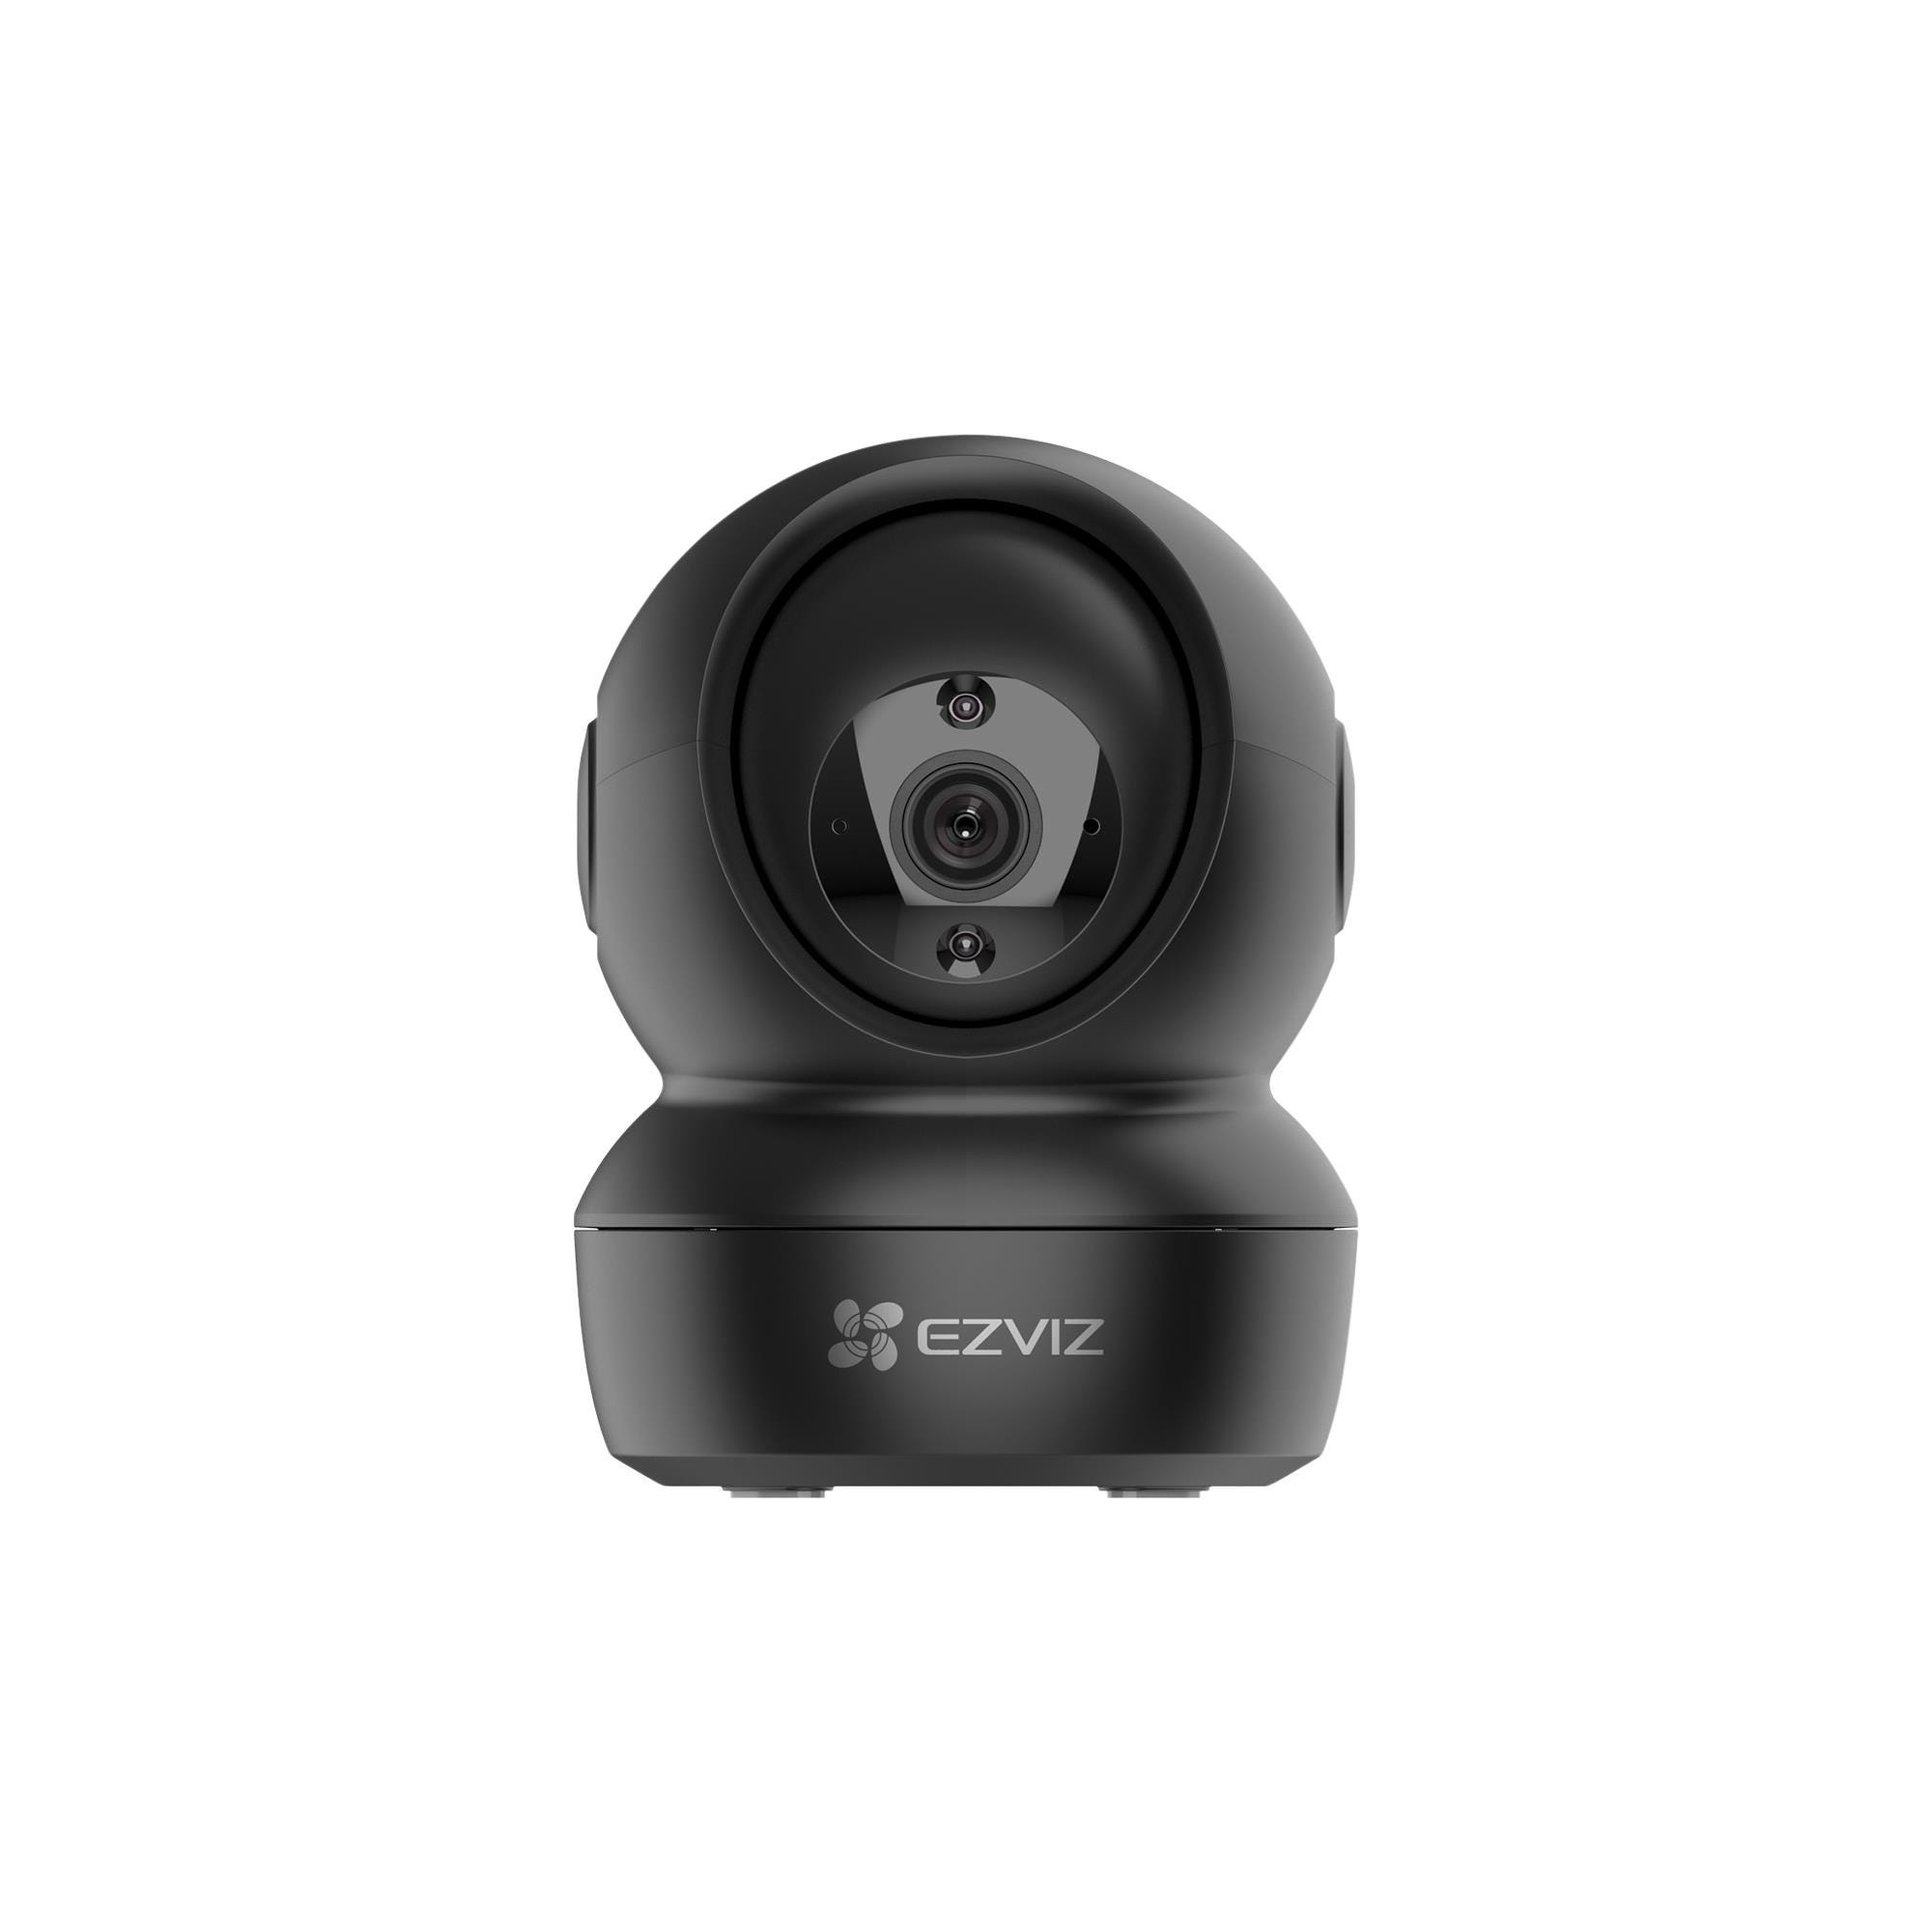 EZVIZ C6N Motion Tracking Pan/Tilt Indoor Wireless Full HD Night-Vision Security Camera - Black